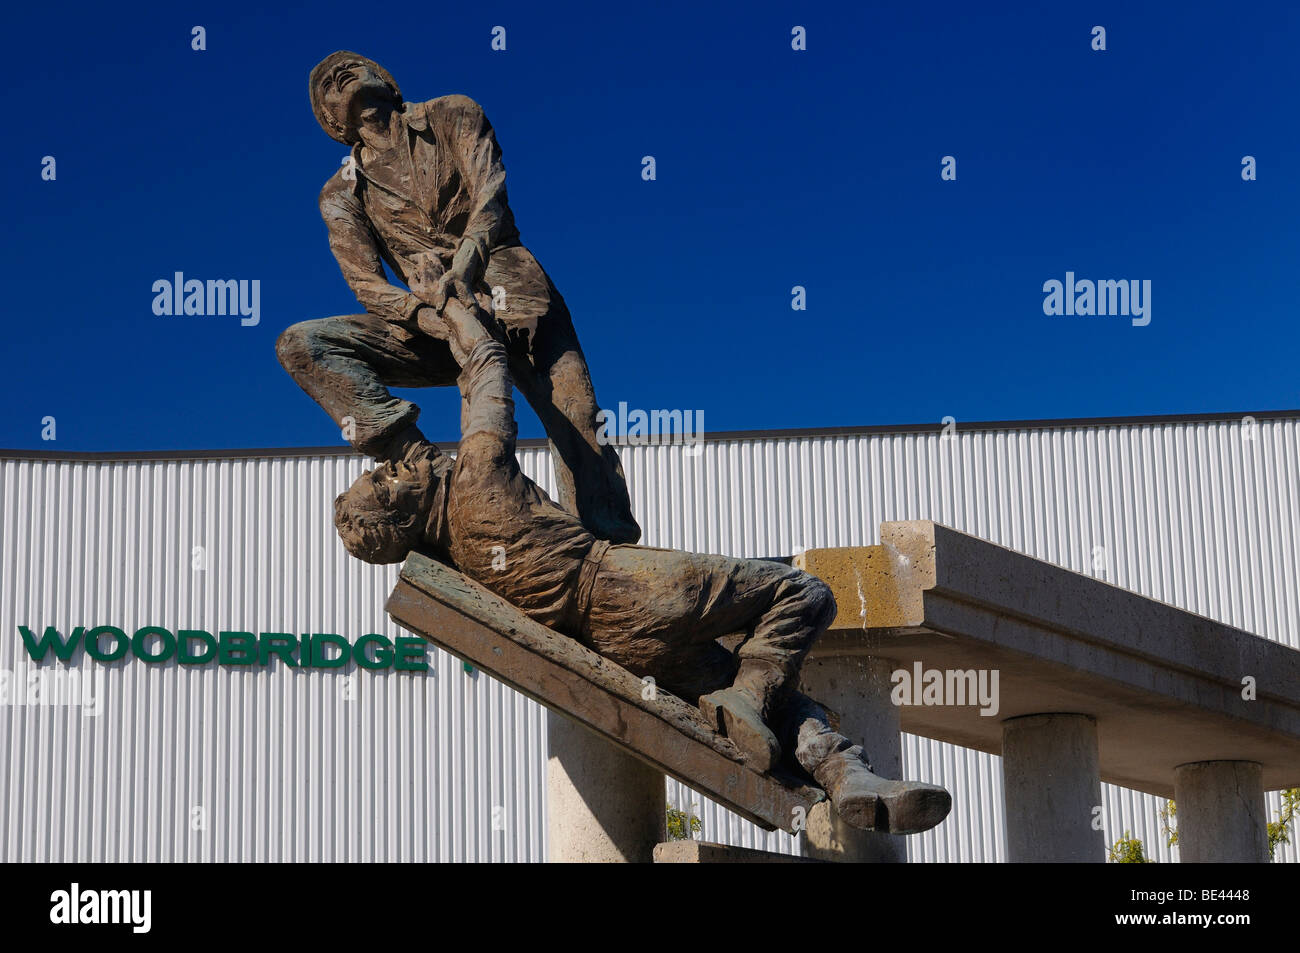 Sculpture of hero saving a construction worker with blue sky at Woodbridge Pool and Memorial Arena Vaughan Ontario - Stock Image